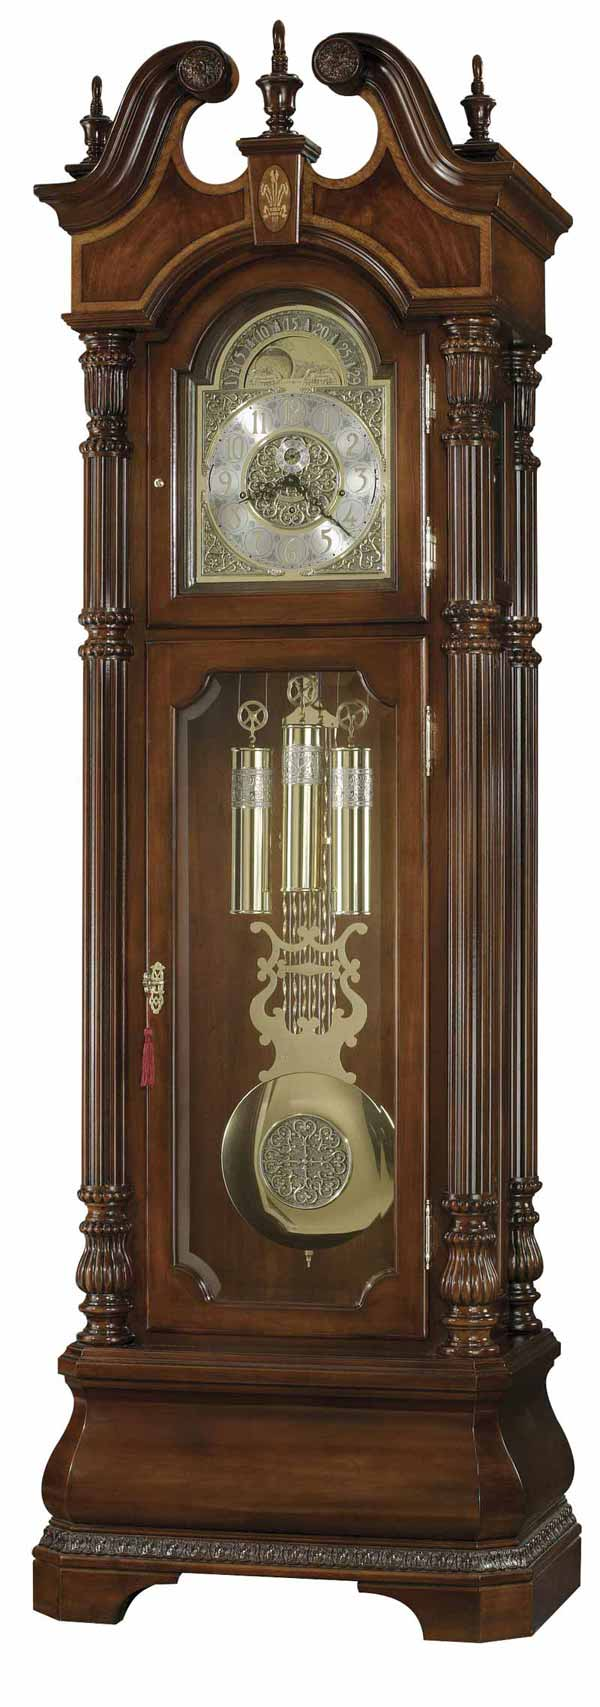 grandfather clocks grandfather clocks from floor clock expert page rh theclockdepot com Antique Clocks Identify Antique Alarm Clocks Price Guide